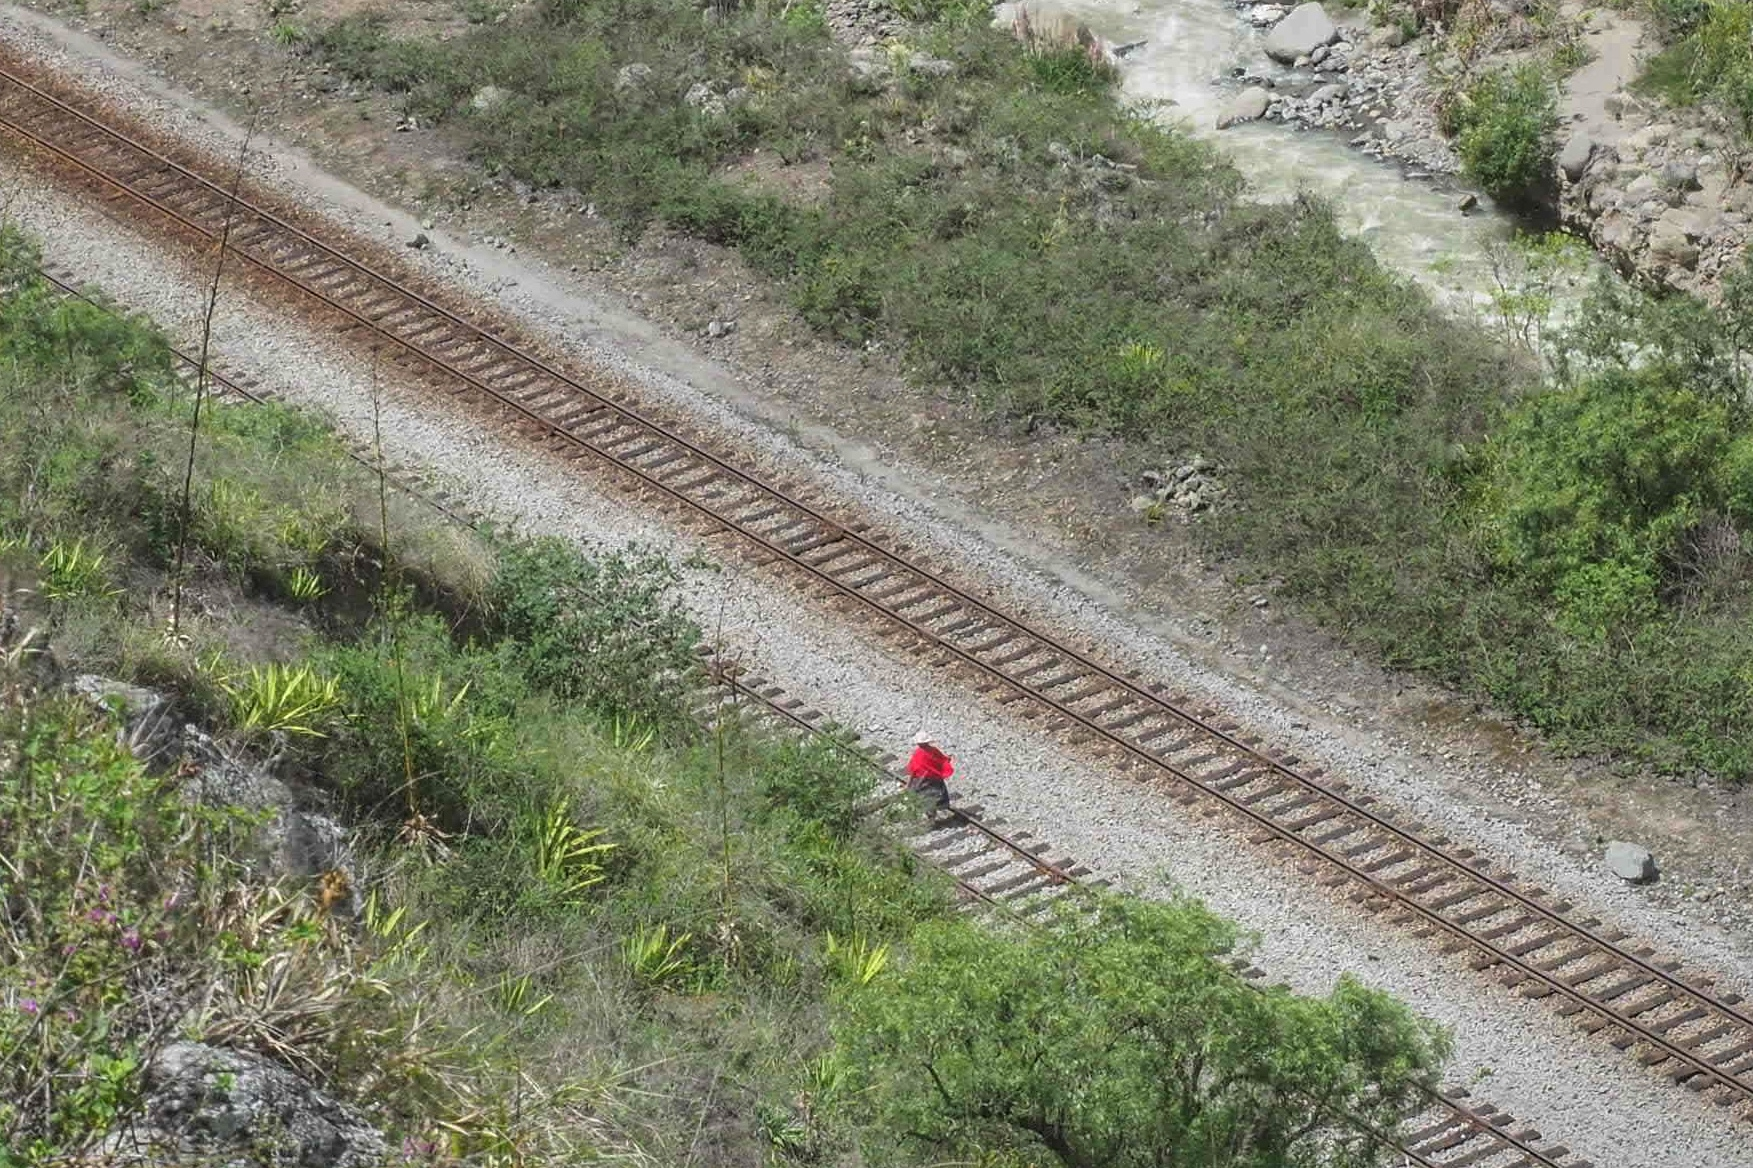 This was taken from the Devil's Nose Train in Ecuador. I was thrilled when a human appeared on the lower tracks. This kind of picture falls into the type of street photography called geometric street photography. The human part of the picture is not so important. Sometimes they just assist with scale. I thought I nailed it, but my viewer's did not agree.